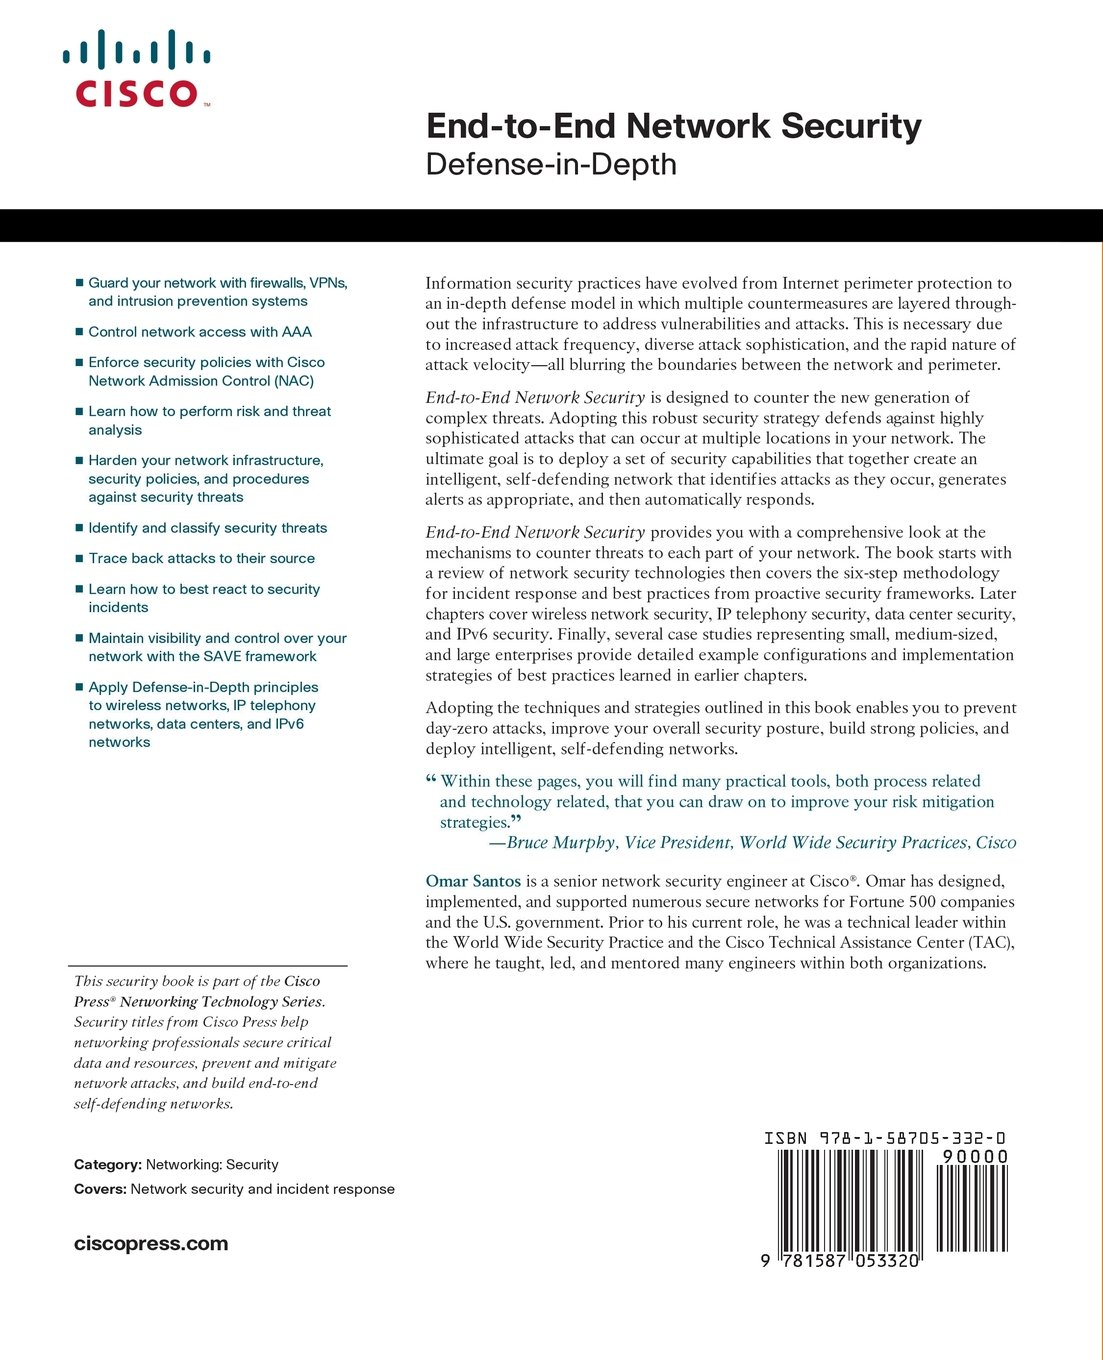 Buy End-to-End Network Security: Defense-in-Depth Book Online at Low